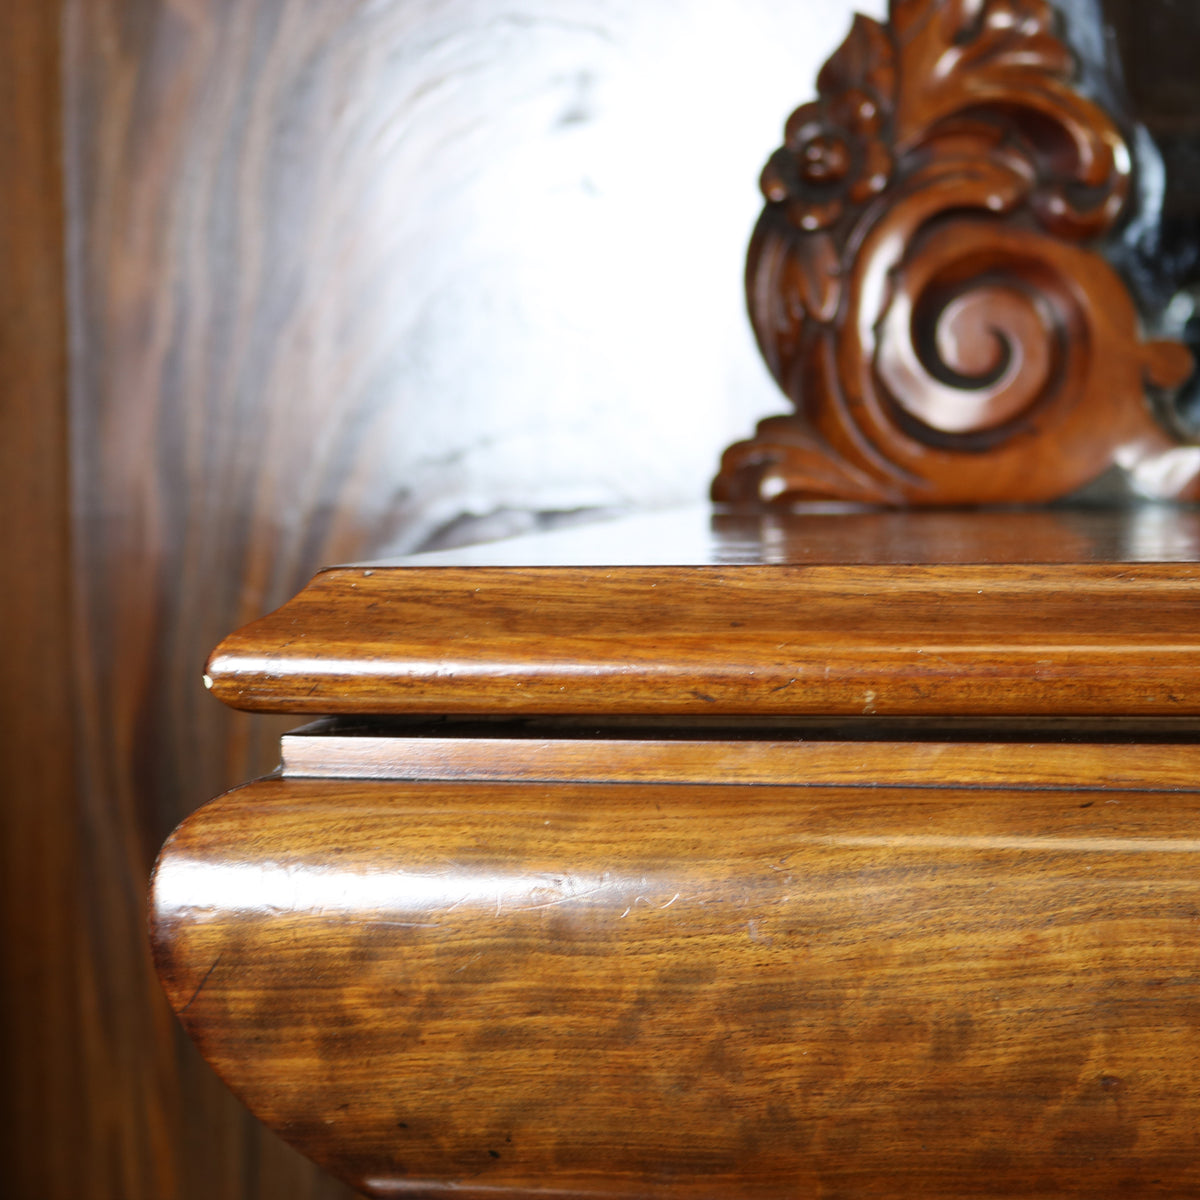 Antique Ornate Carved Mahogany Sideboard with Mirror and Secret Drawers | The Architectural Forum